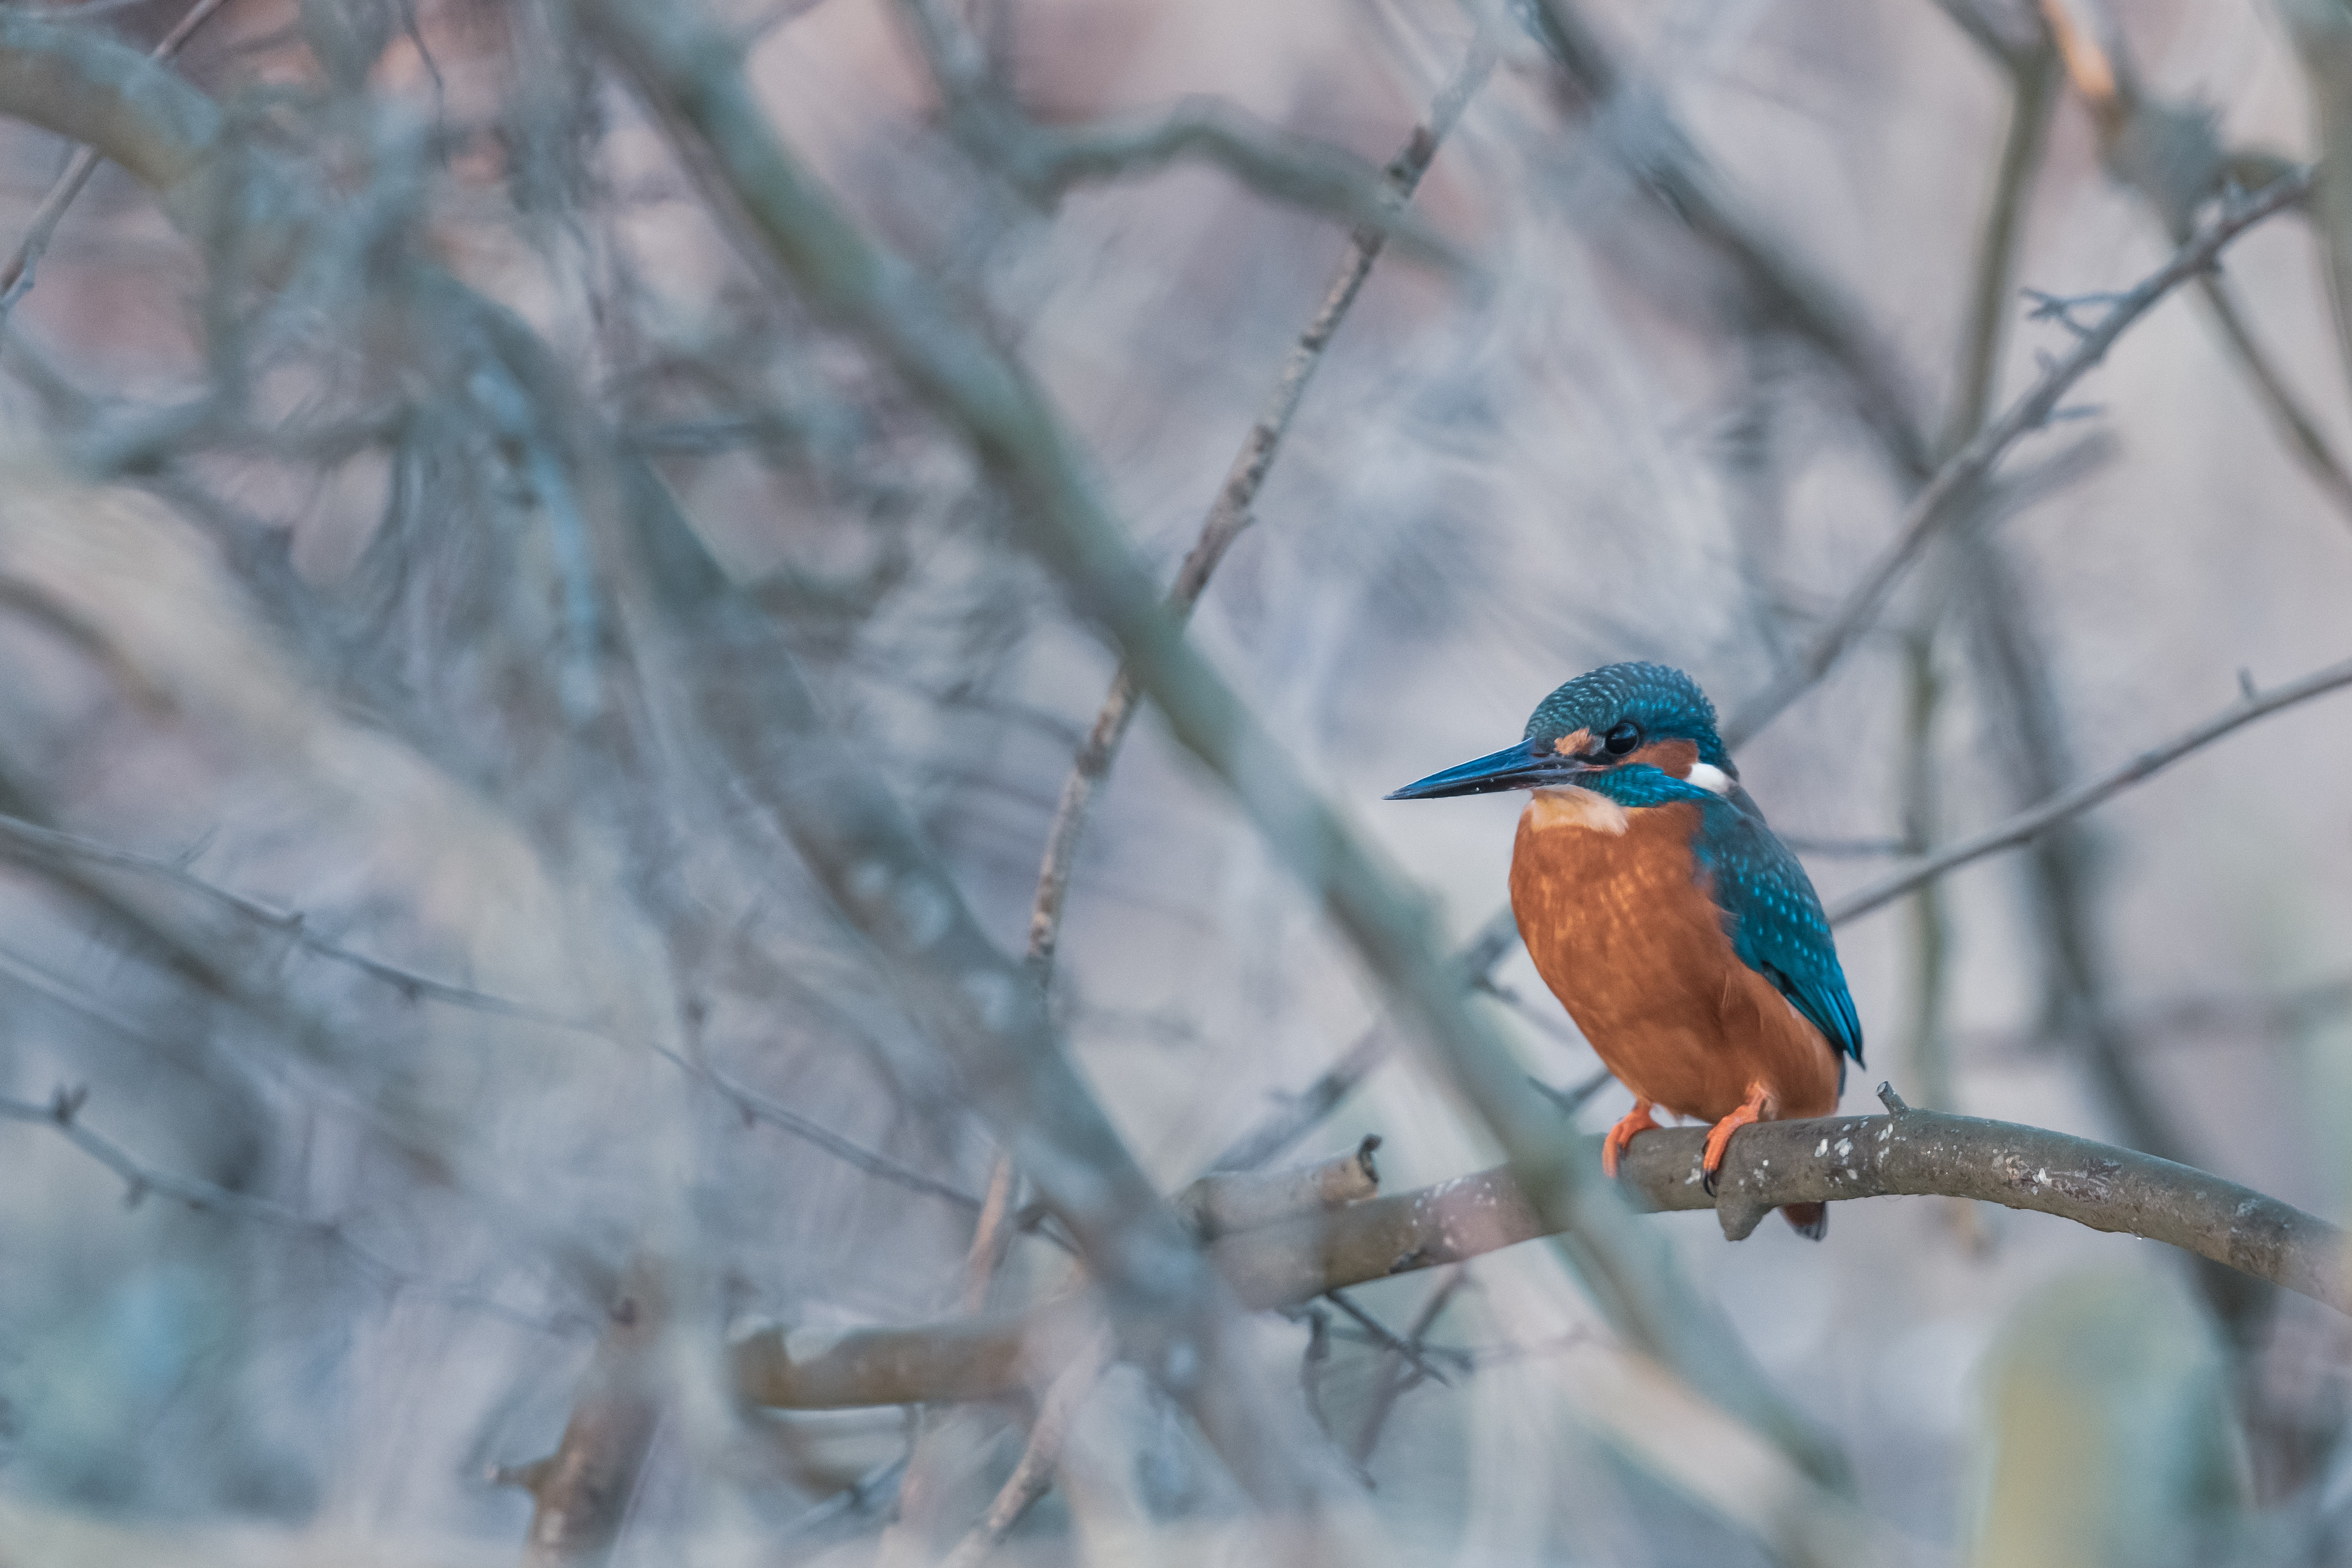 blue and brown bird of tree branch